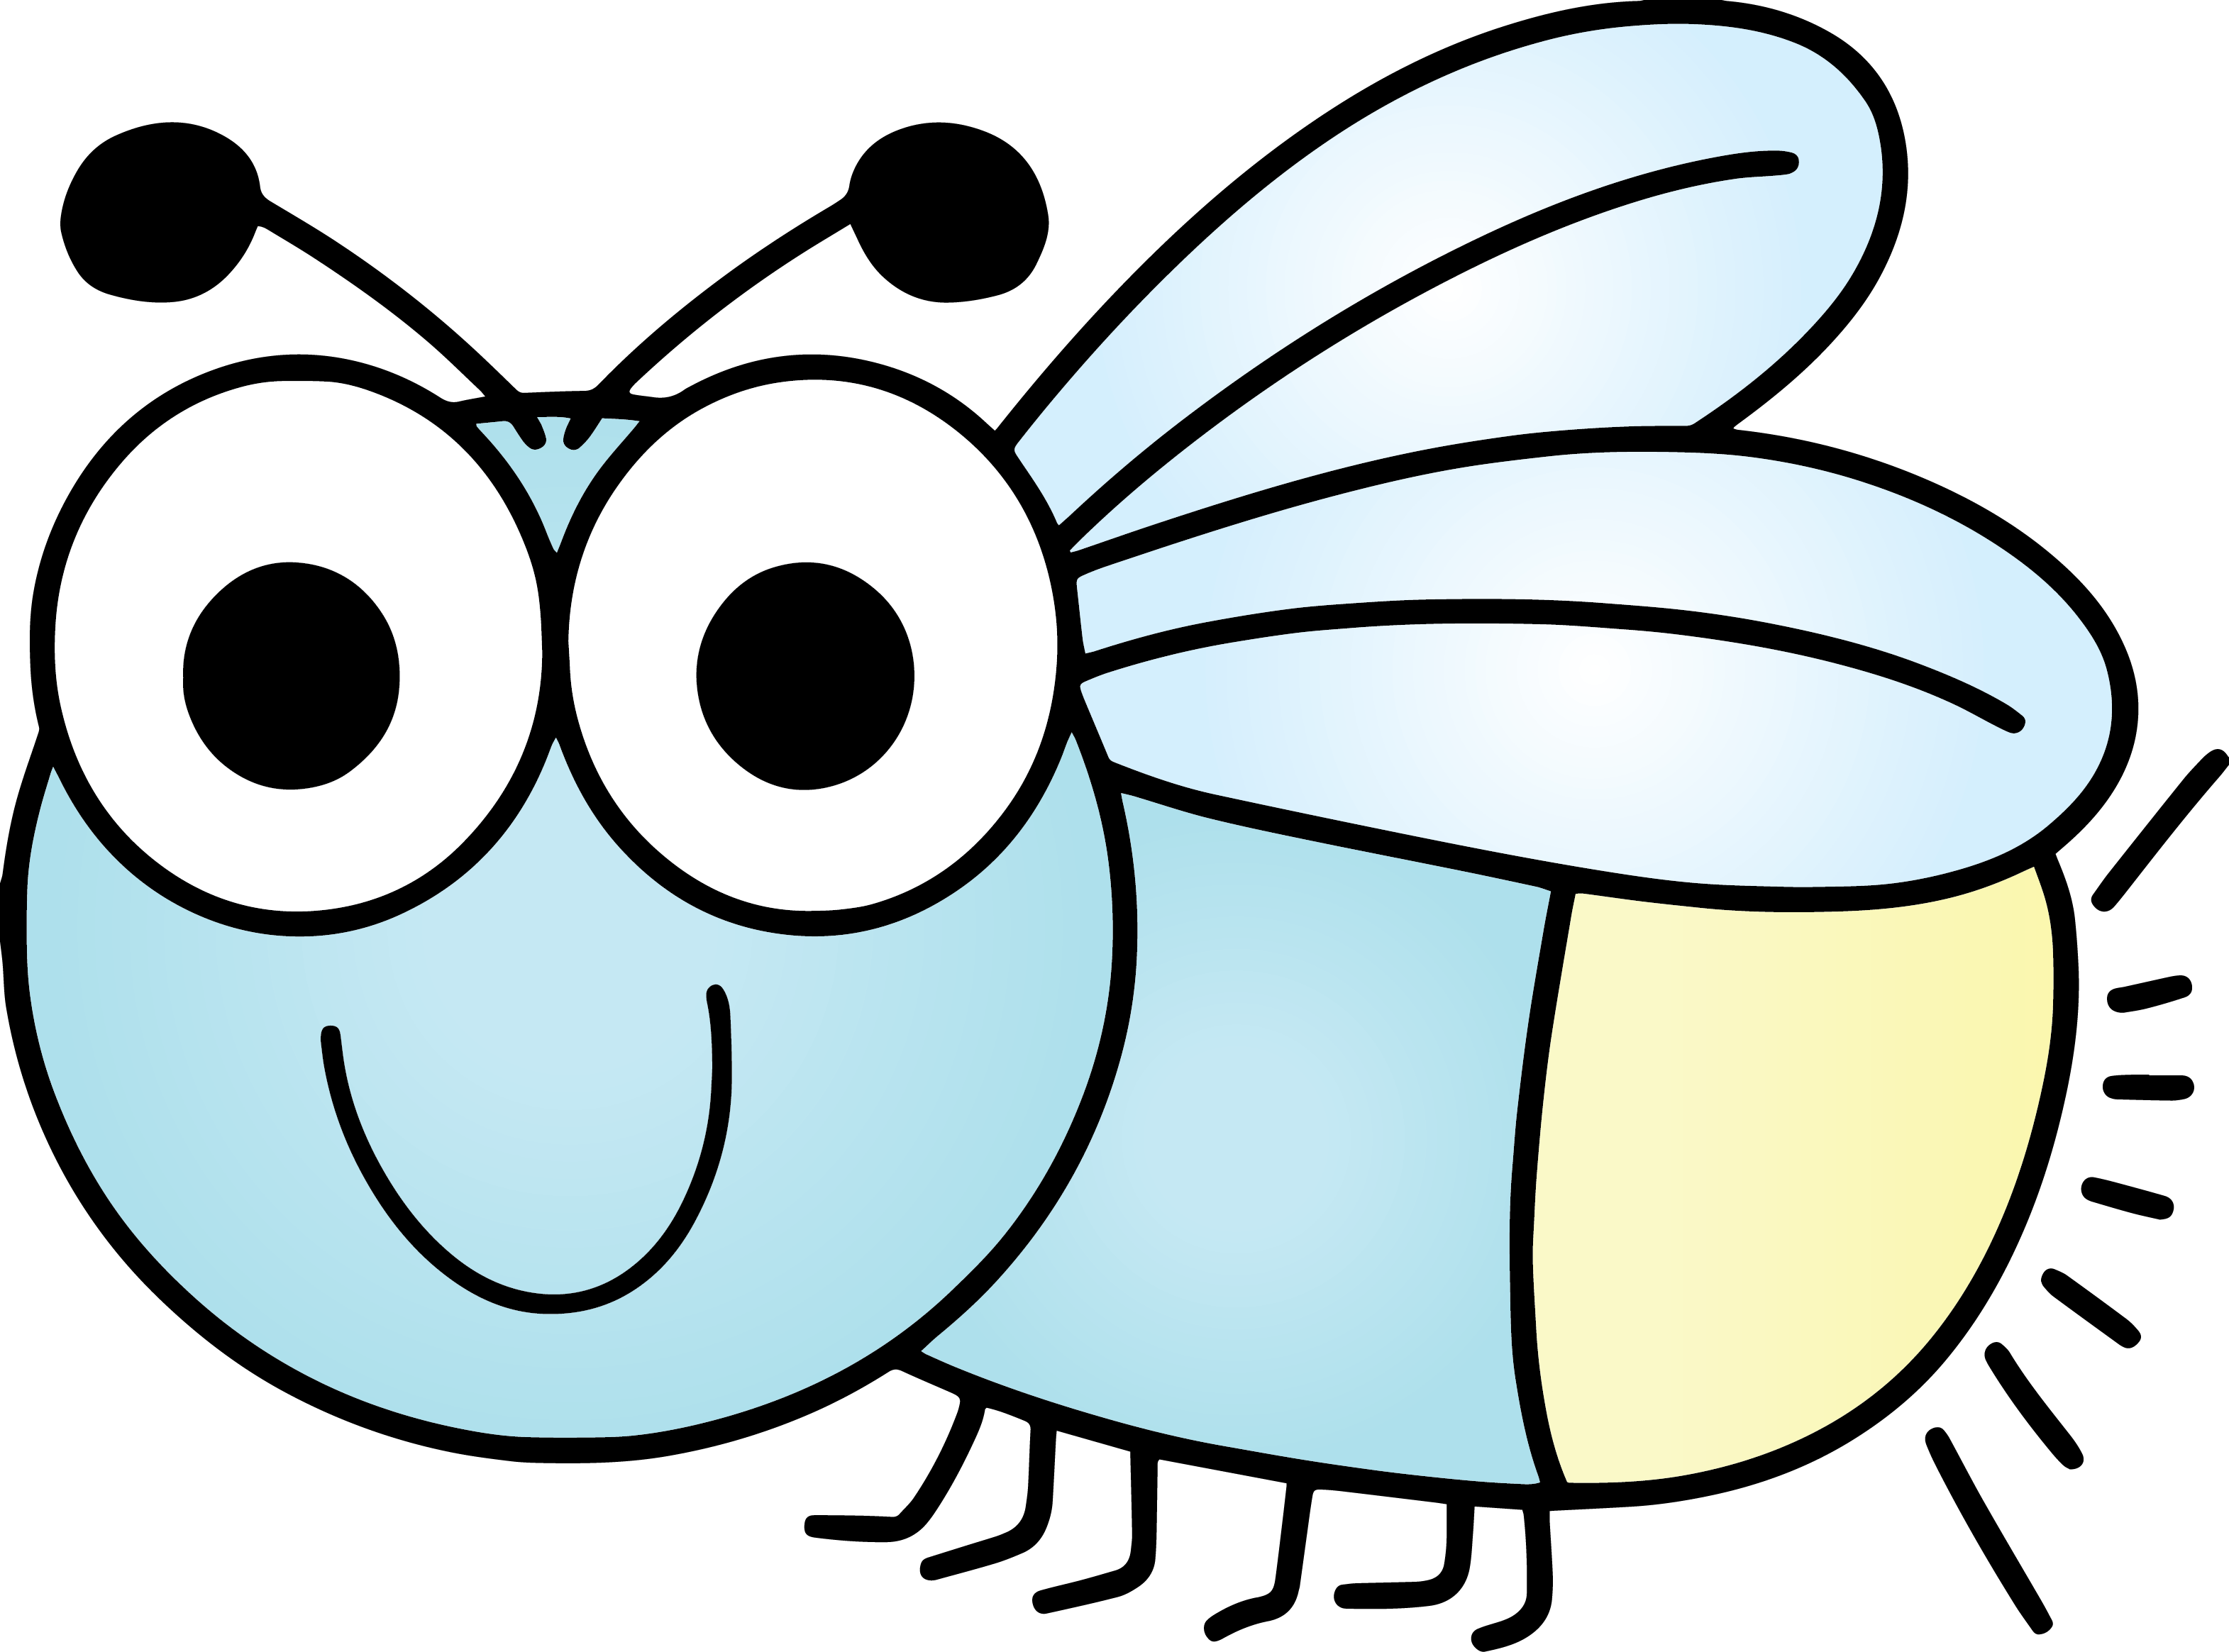 vector royalty free Child education hastings mn. Firefly insect clipart.